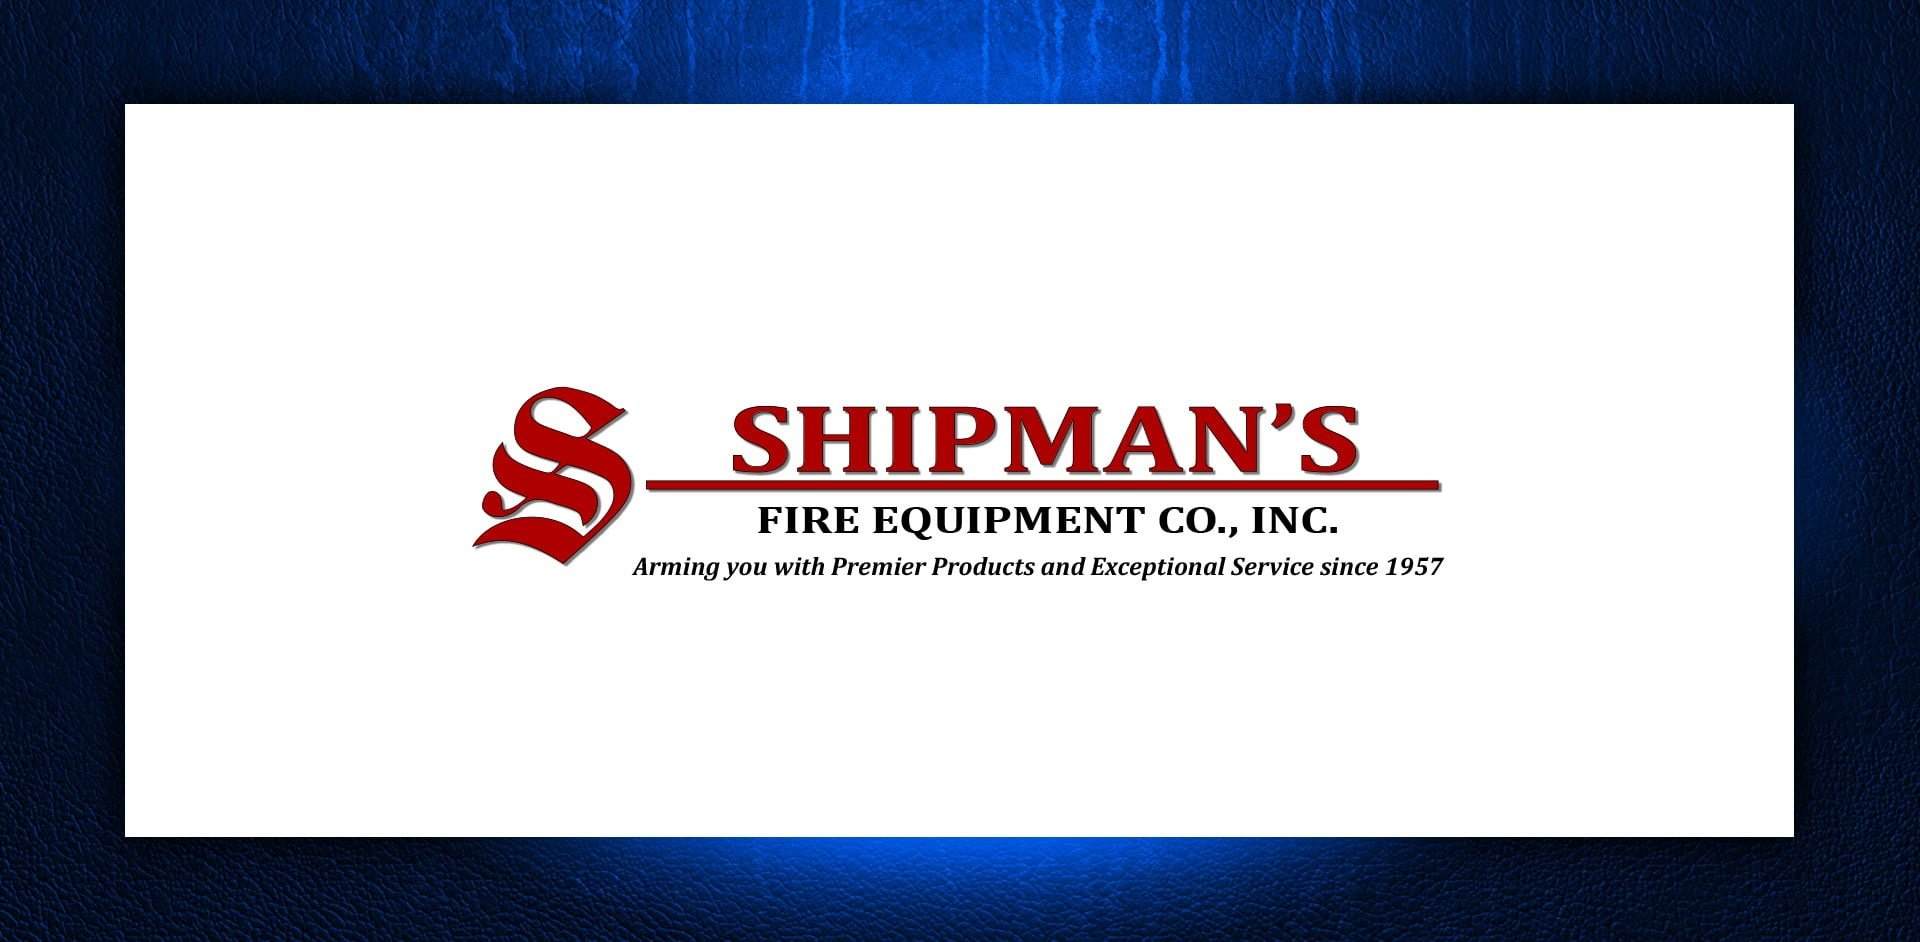 Shipman's Fire Equipment Co., Inc